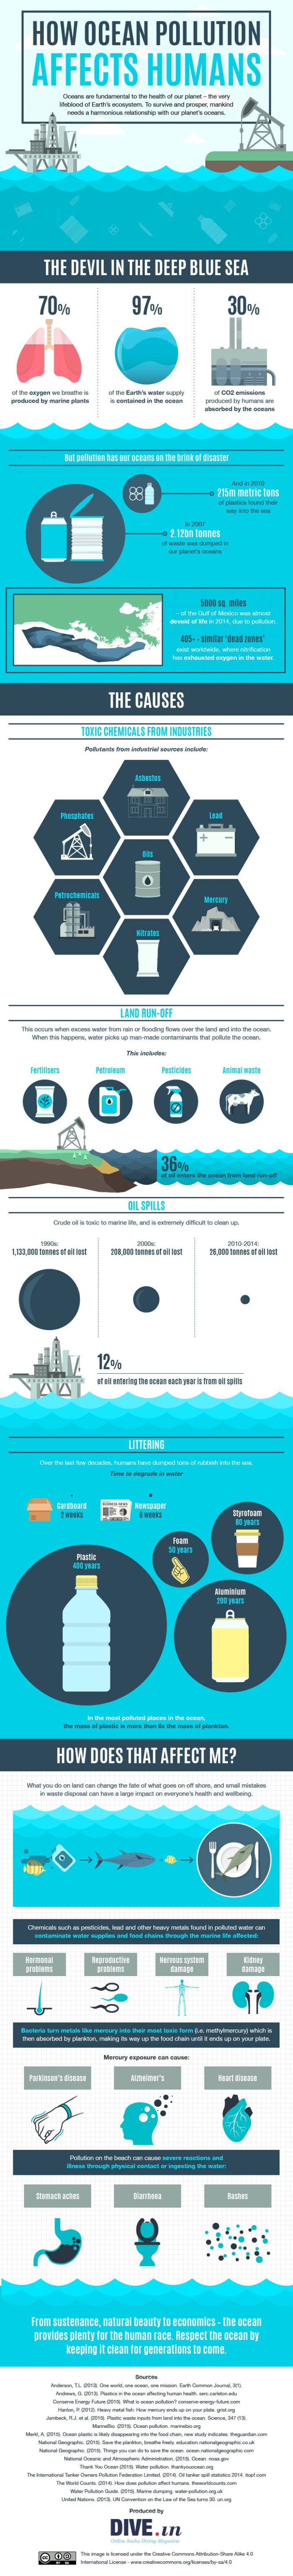 How-ocean-pollution-affects-humans